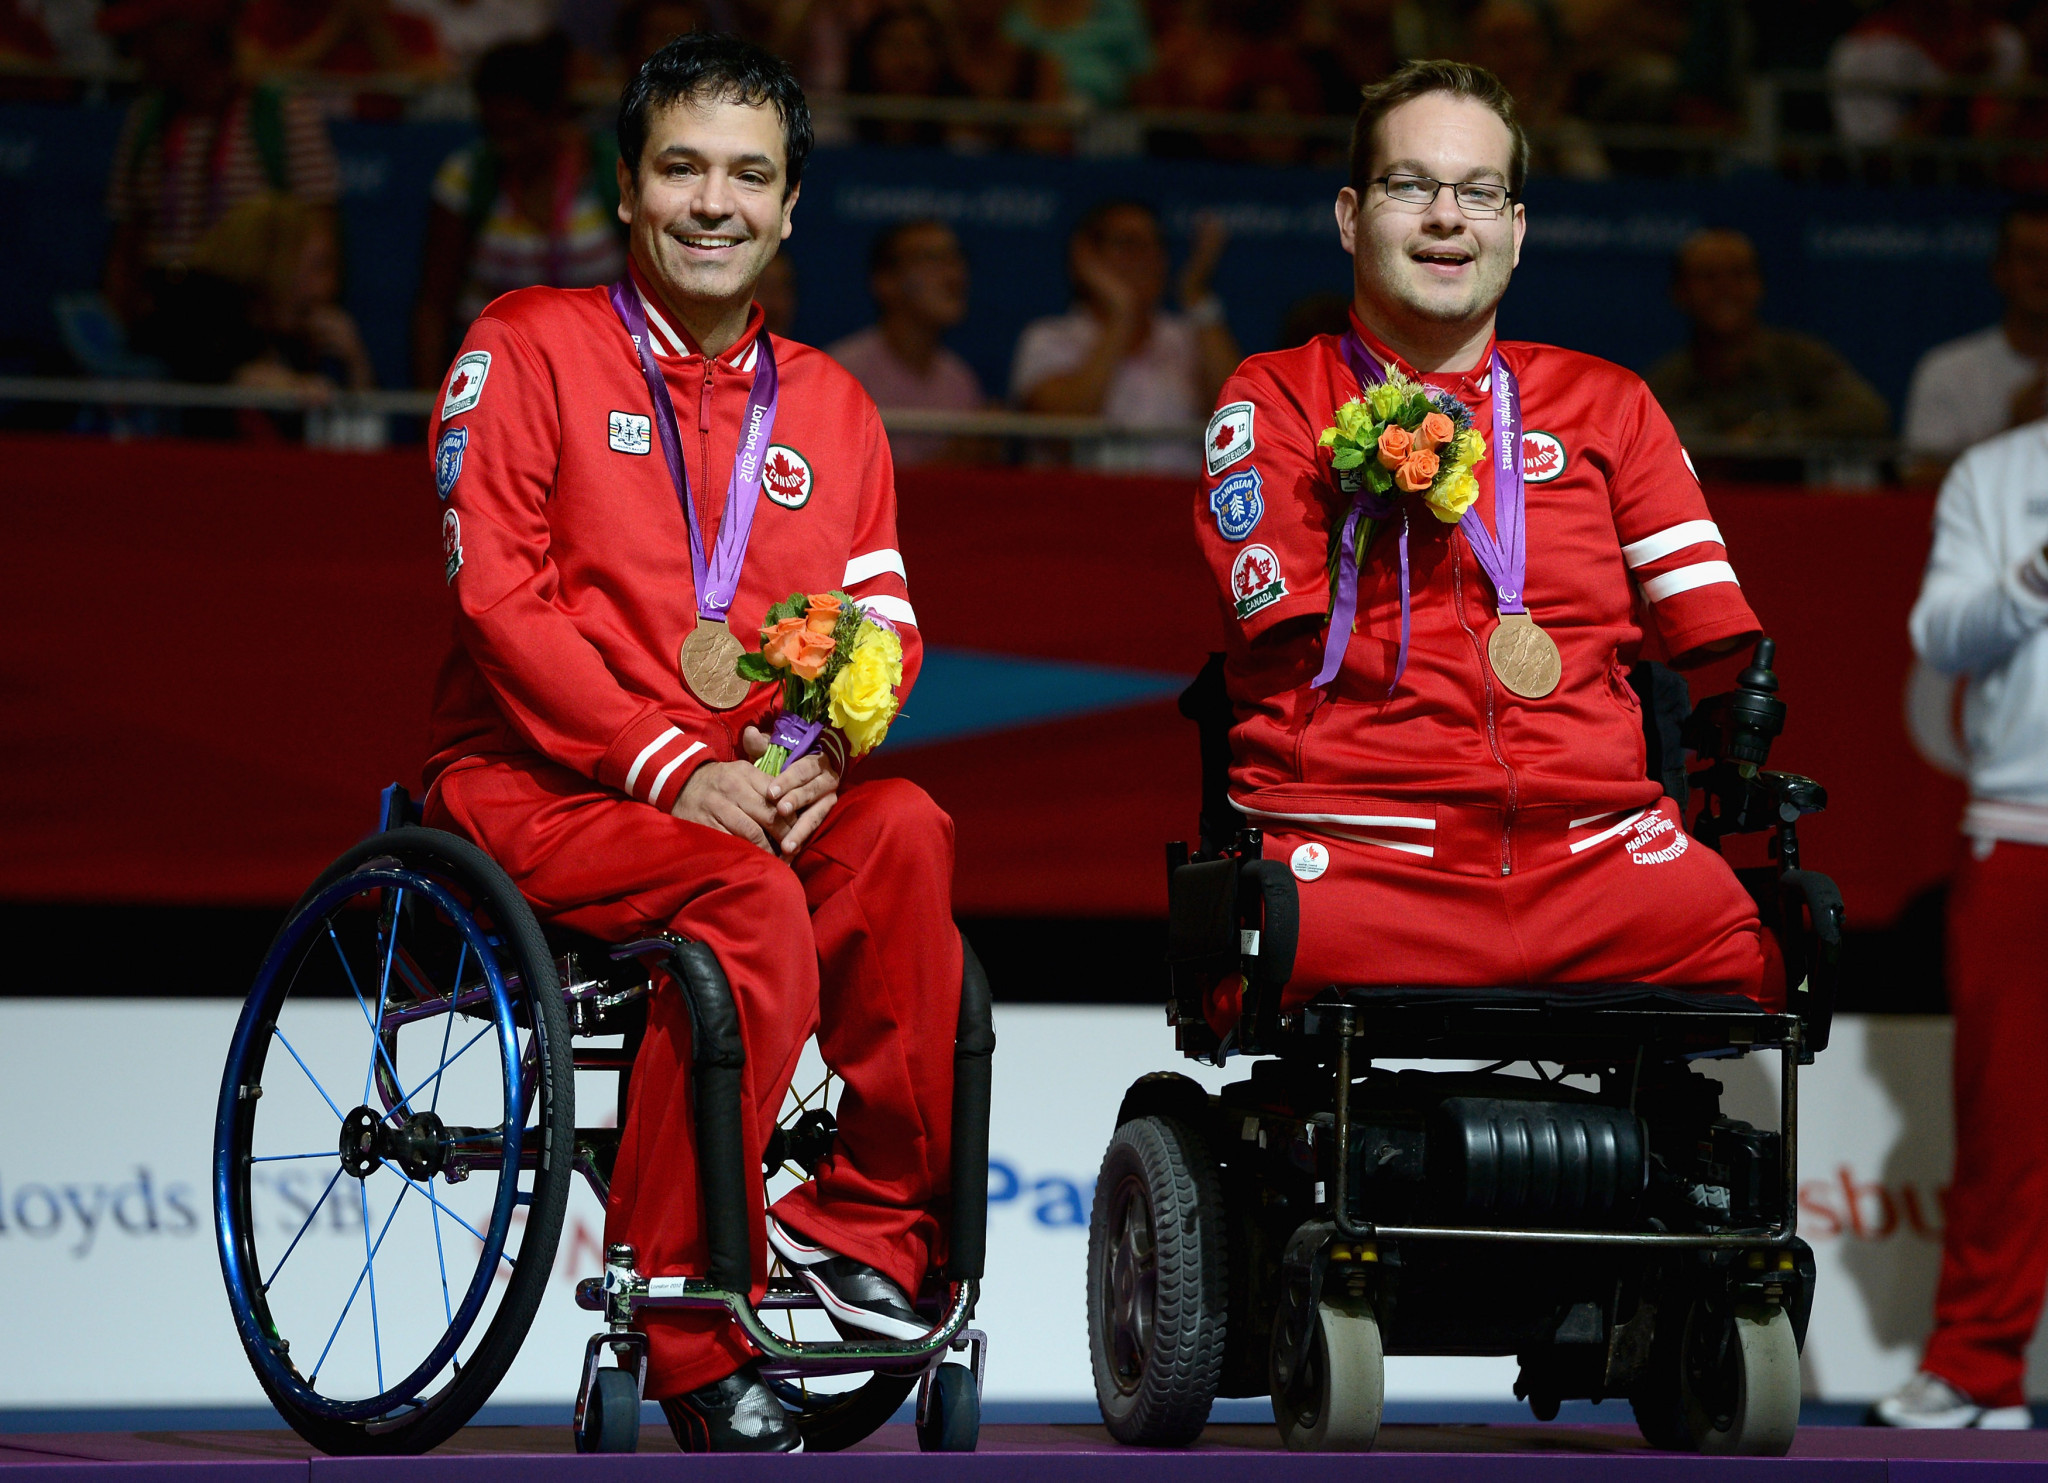 Marco Dispaltro, left, and Josh Vander Vies won Canada's last Paralympic medal - BC4 pairs bronze at London 2012 ©Getty Images